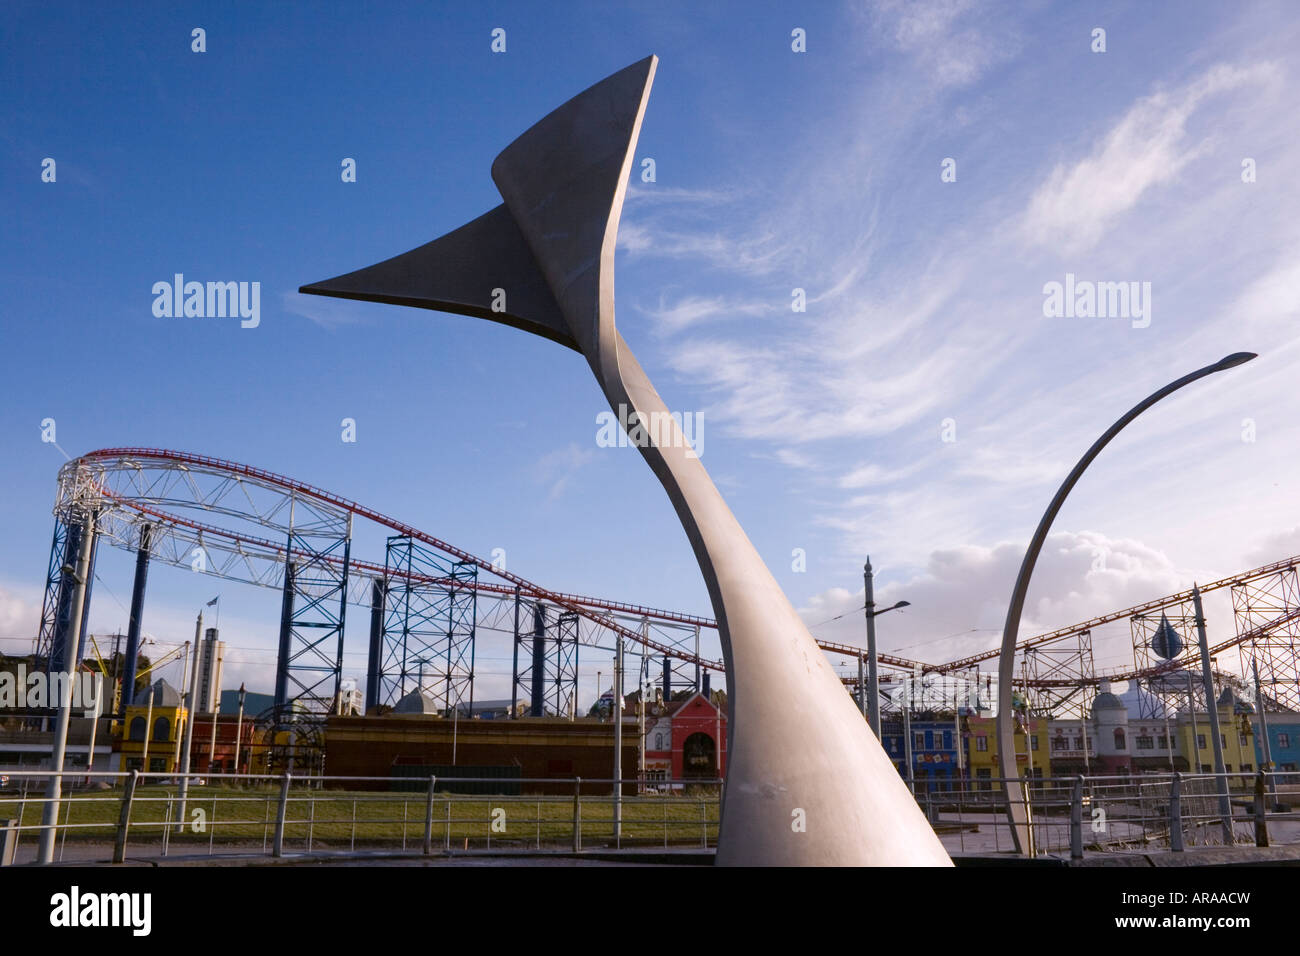 Blackpool Lancashire England South Promenade Swivelling Wind Shelter sculpture with Big One roller coaster behind - Stock Image